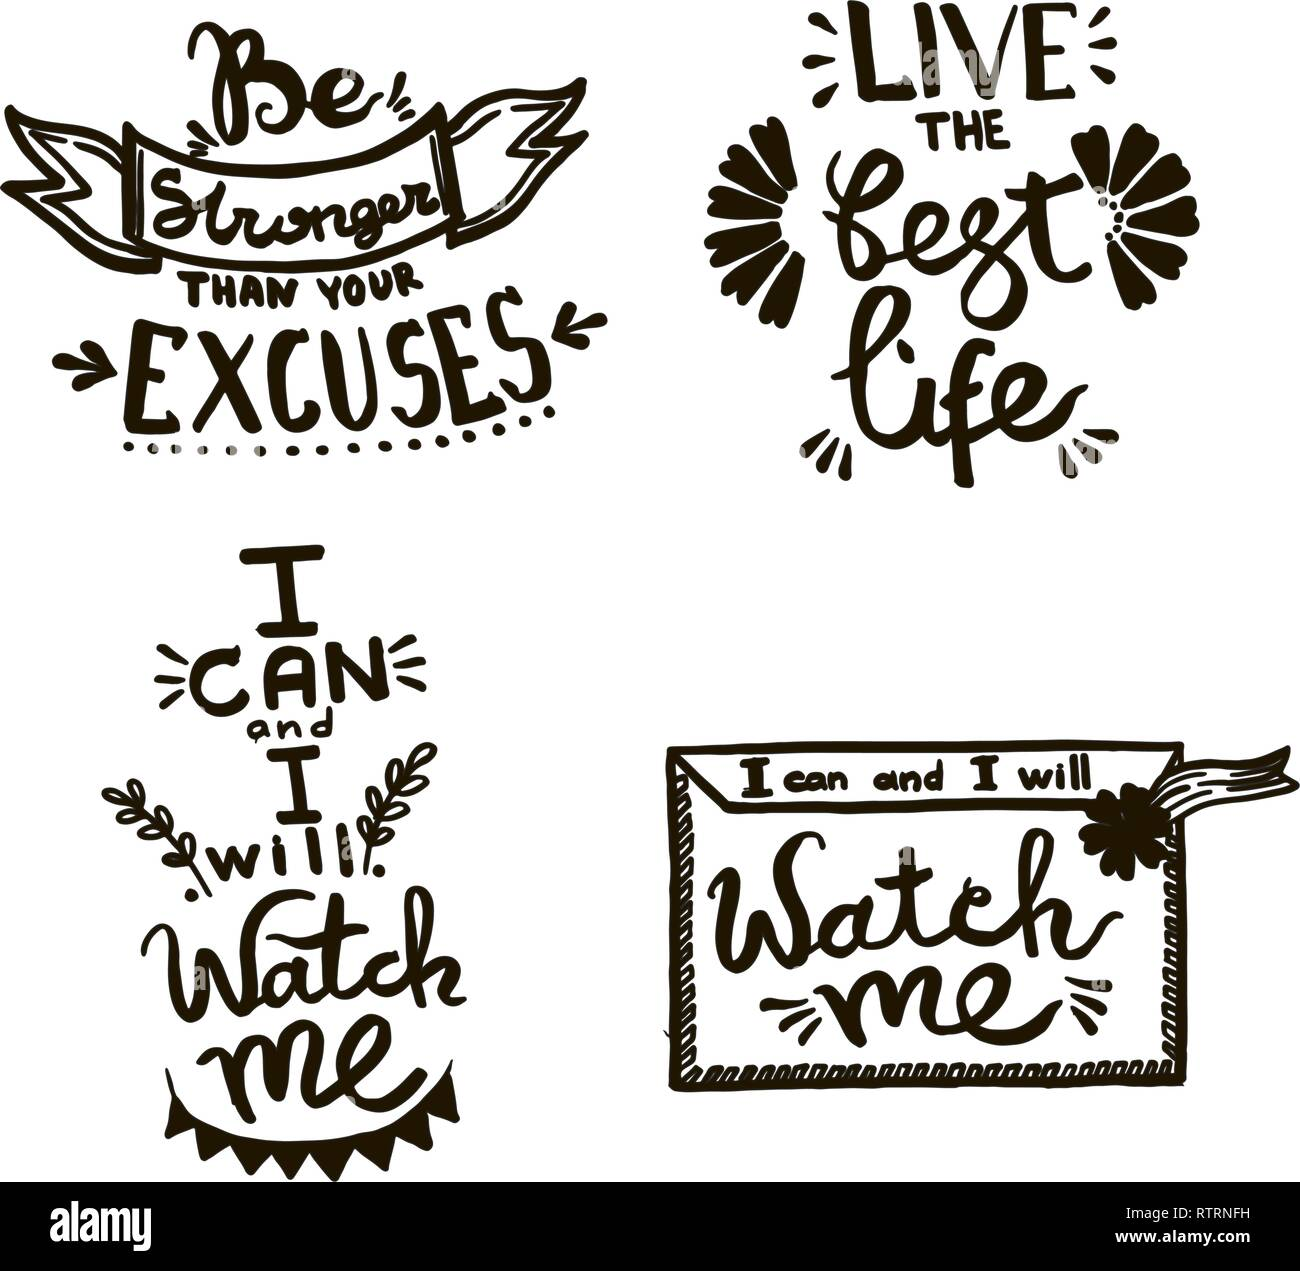 Quotes Cut Out Stock & Alamy